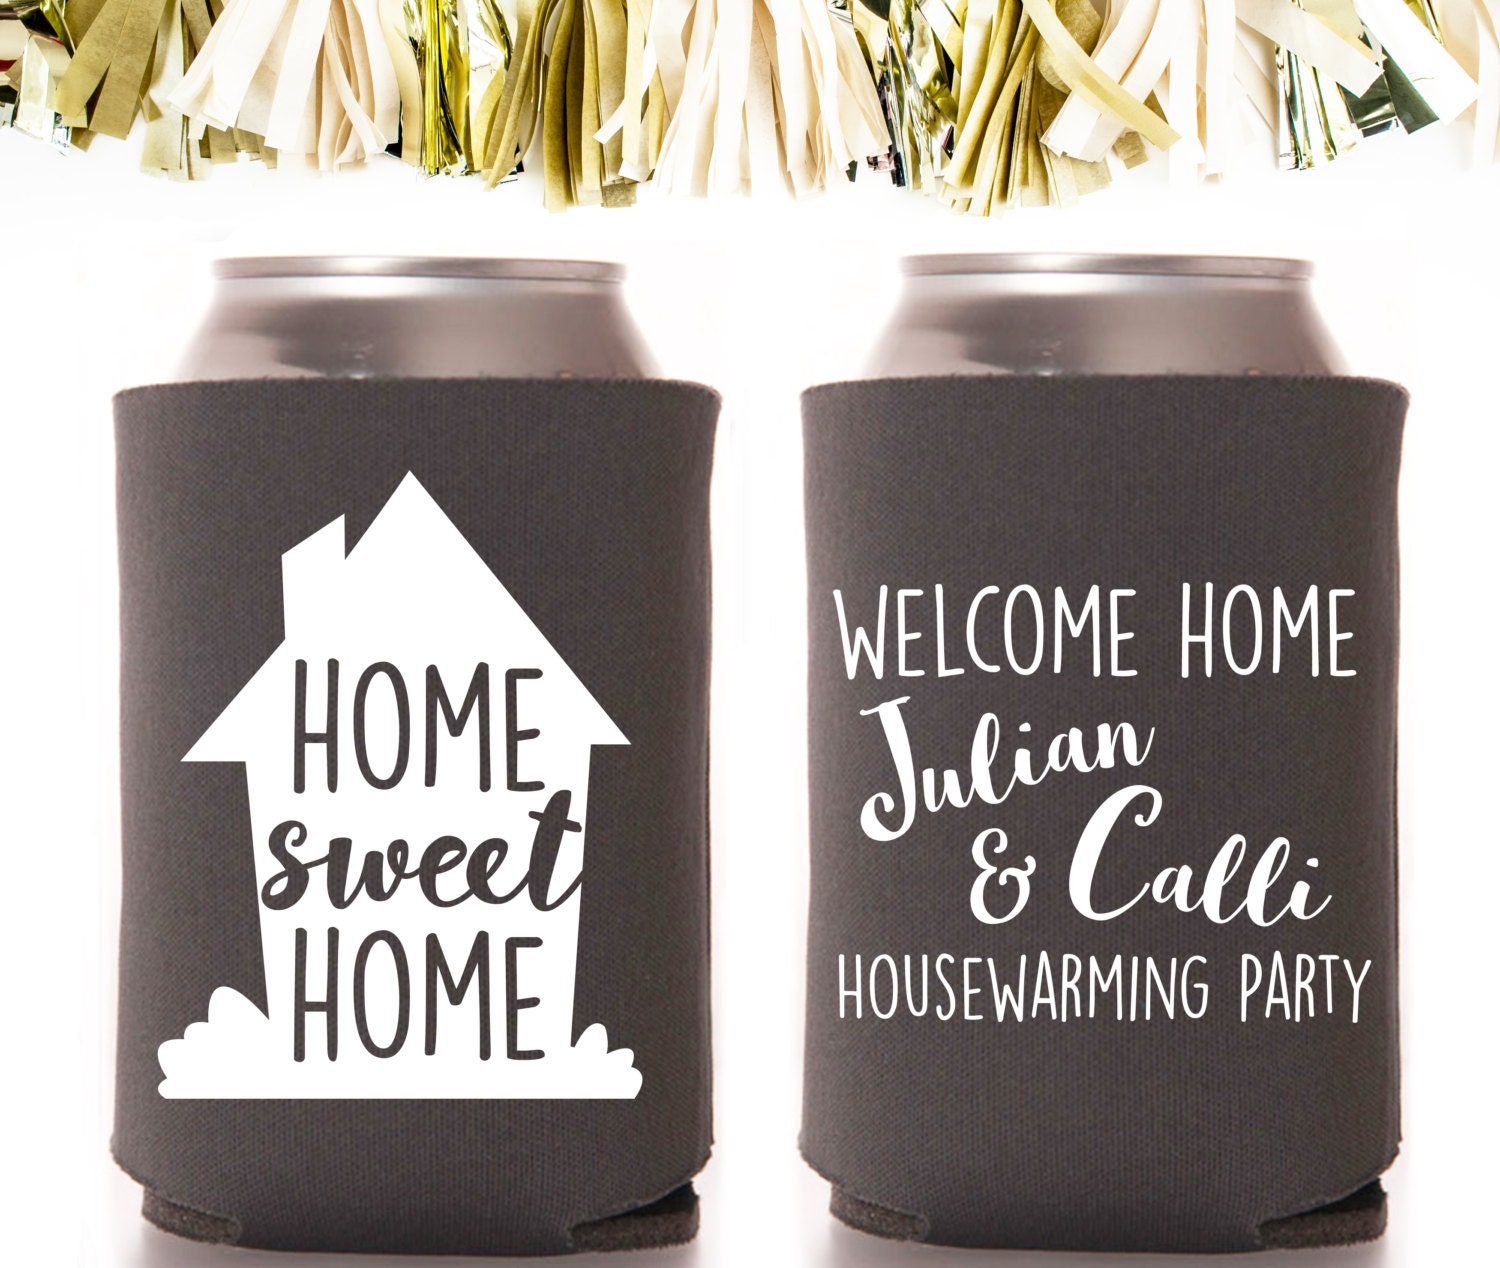 Housewarming Home Sweet Home Party Favors: by CoffeltDesigns